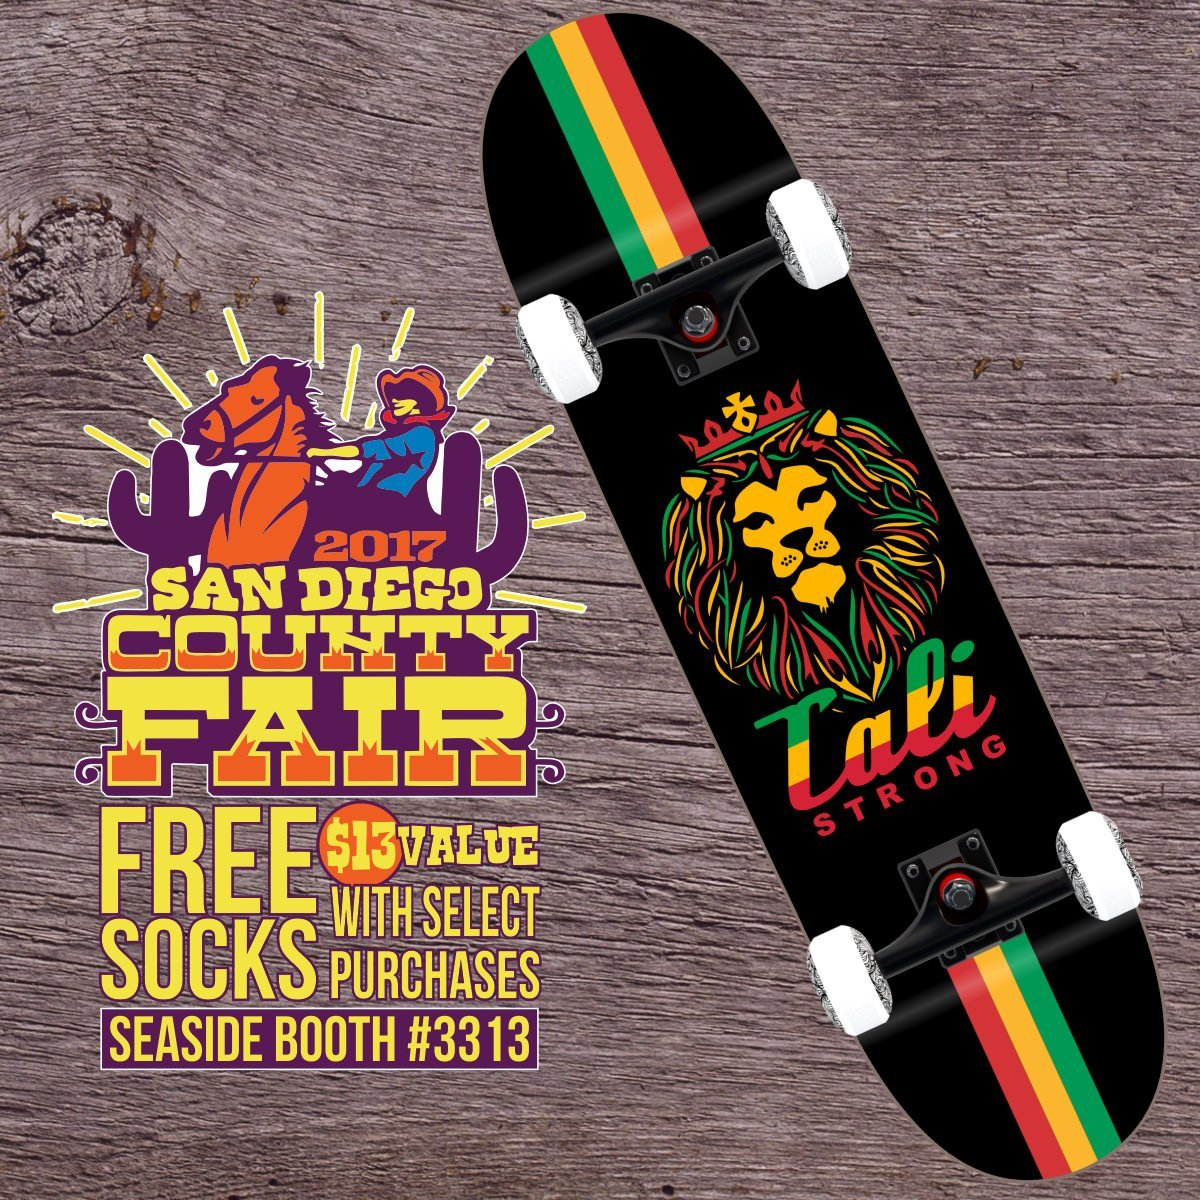 FREE Socks with any skateboard purchase at the San Diego County